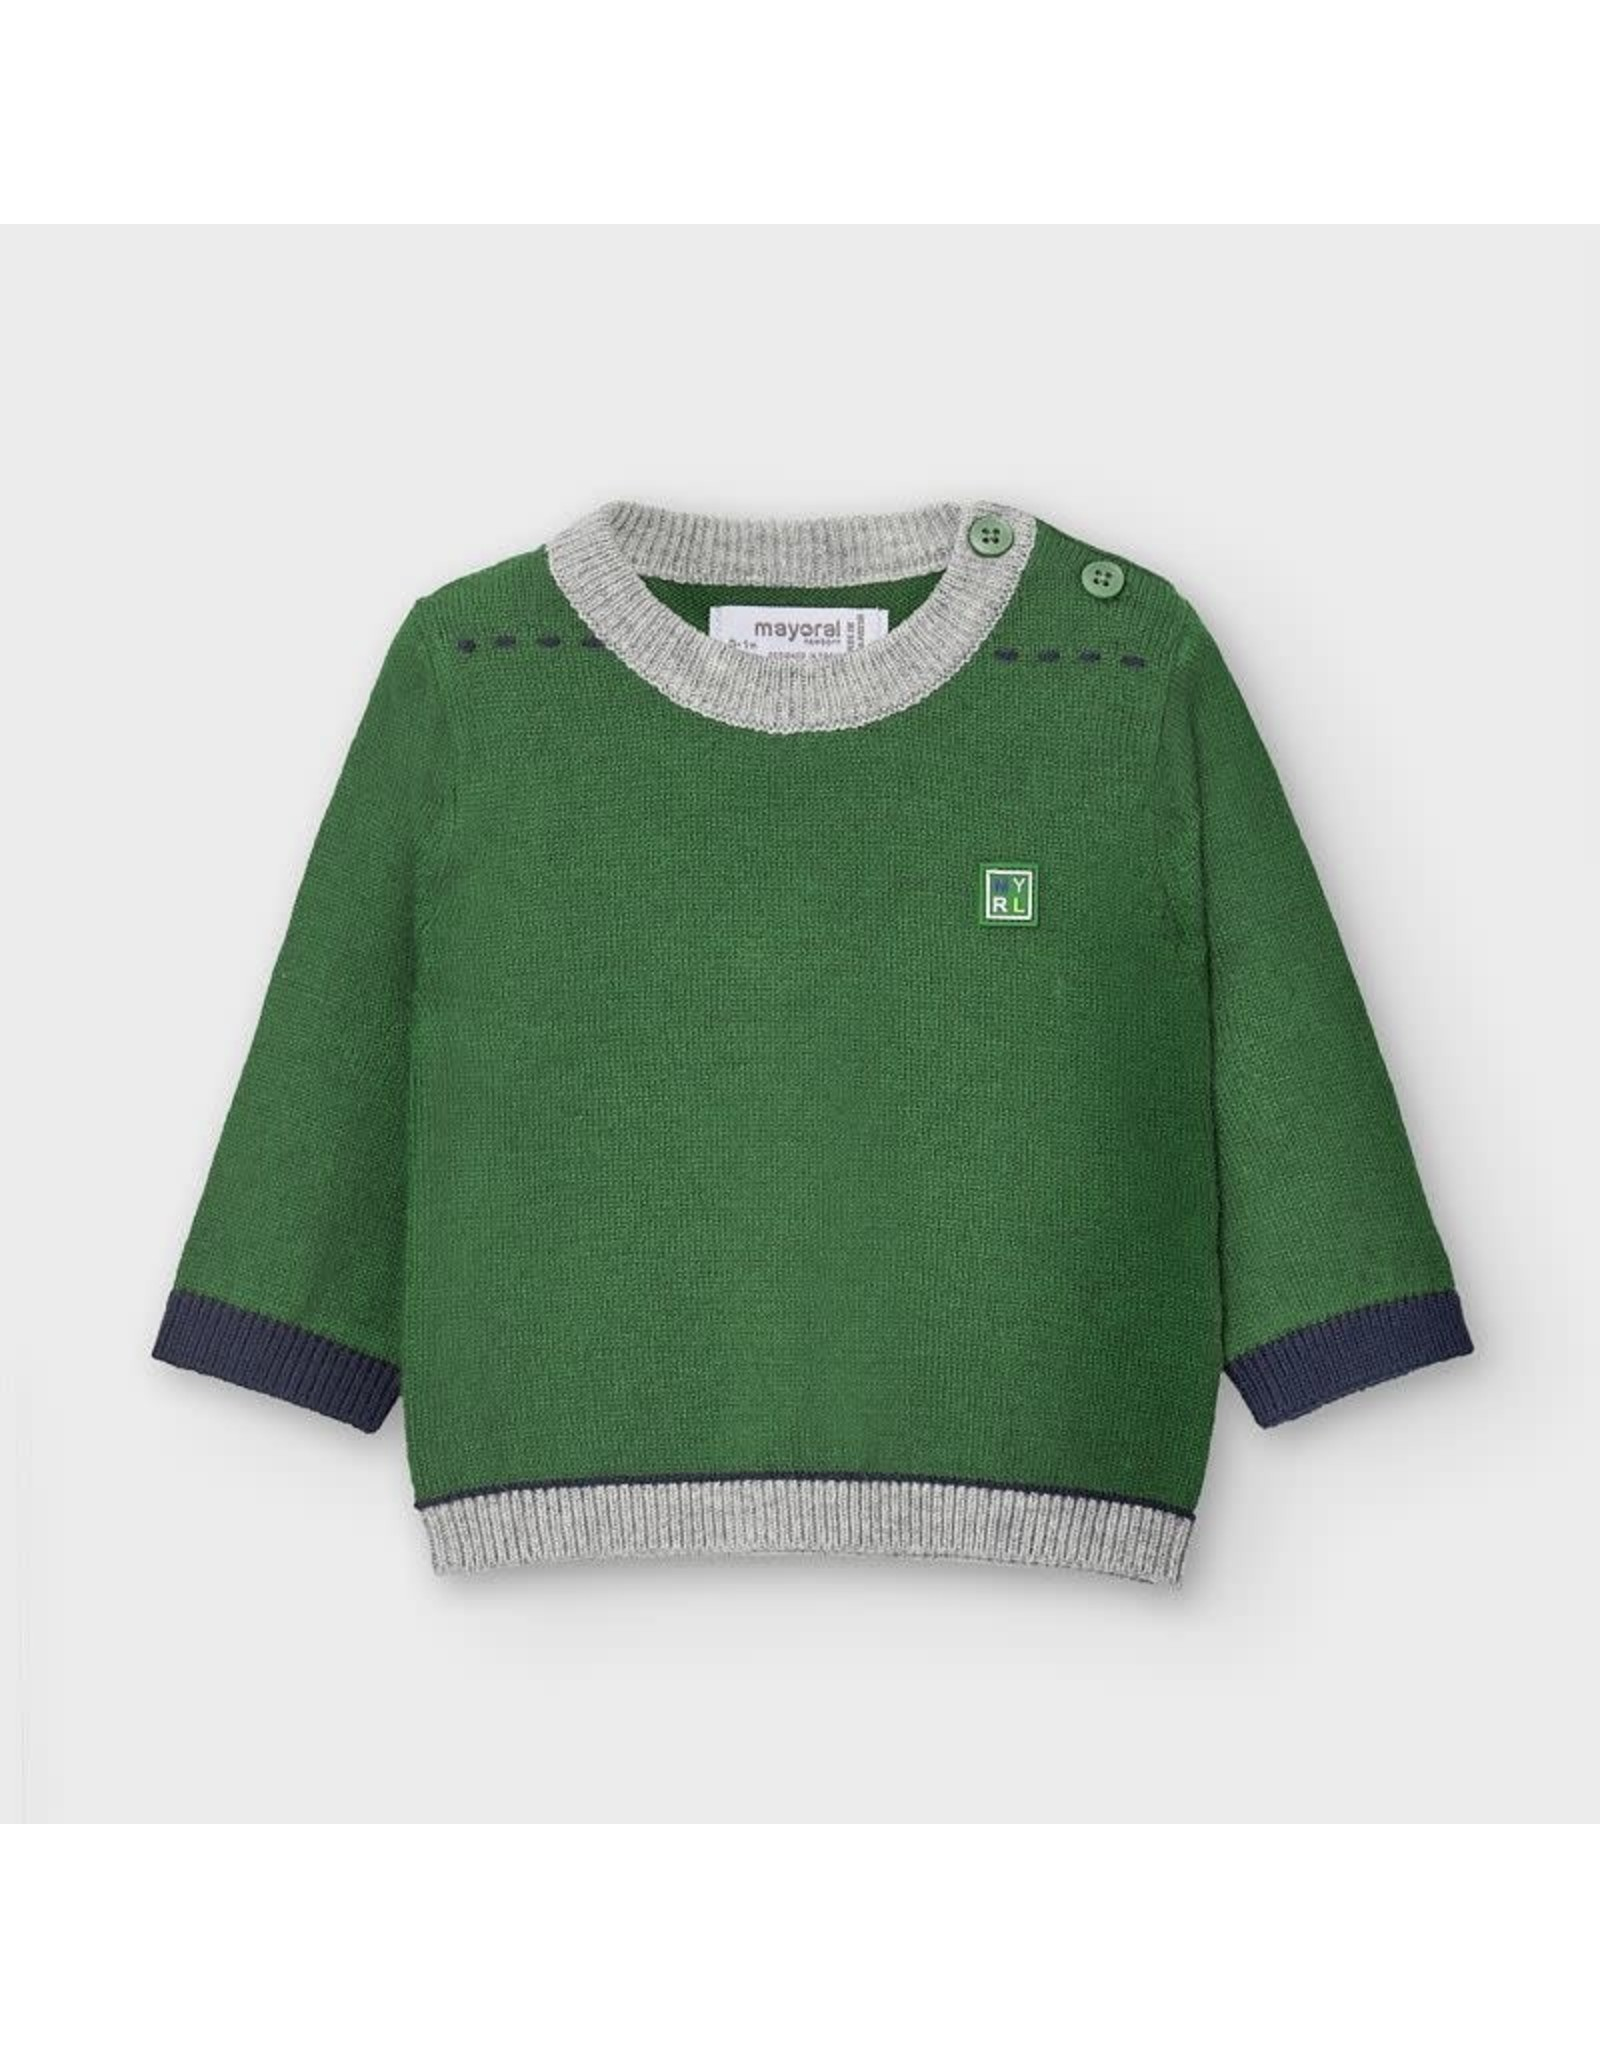 Mayoral Moss Green Sweater